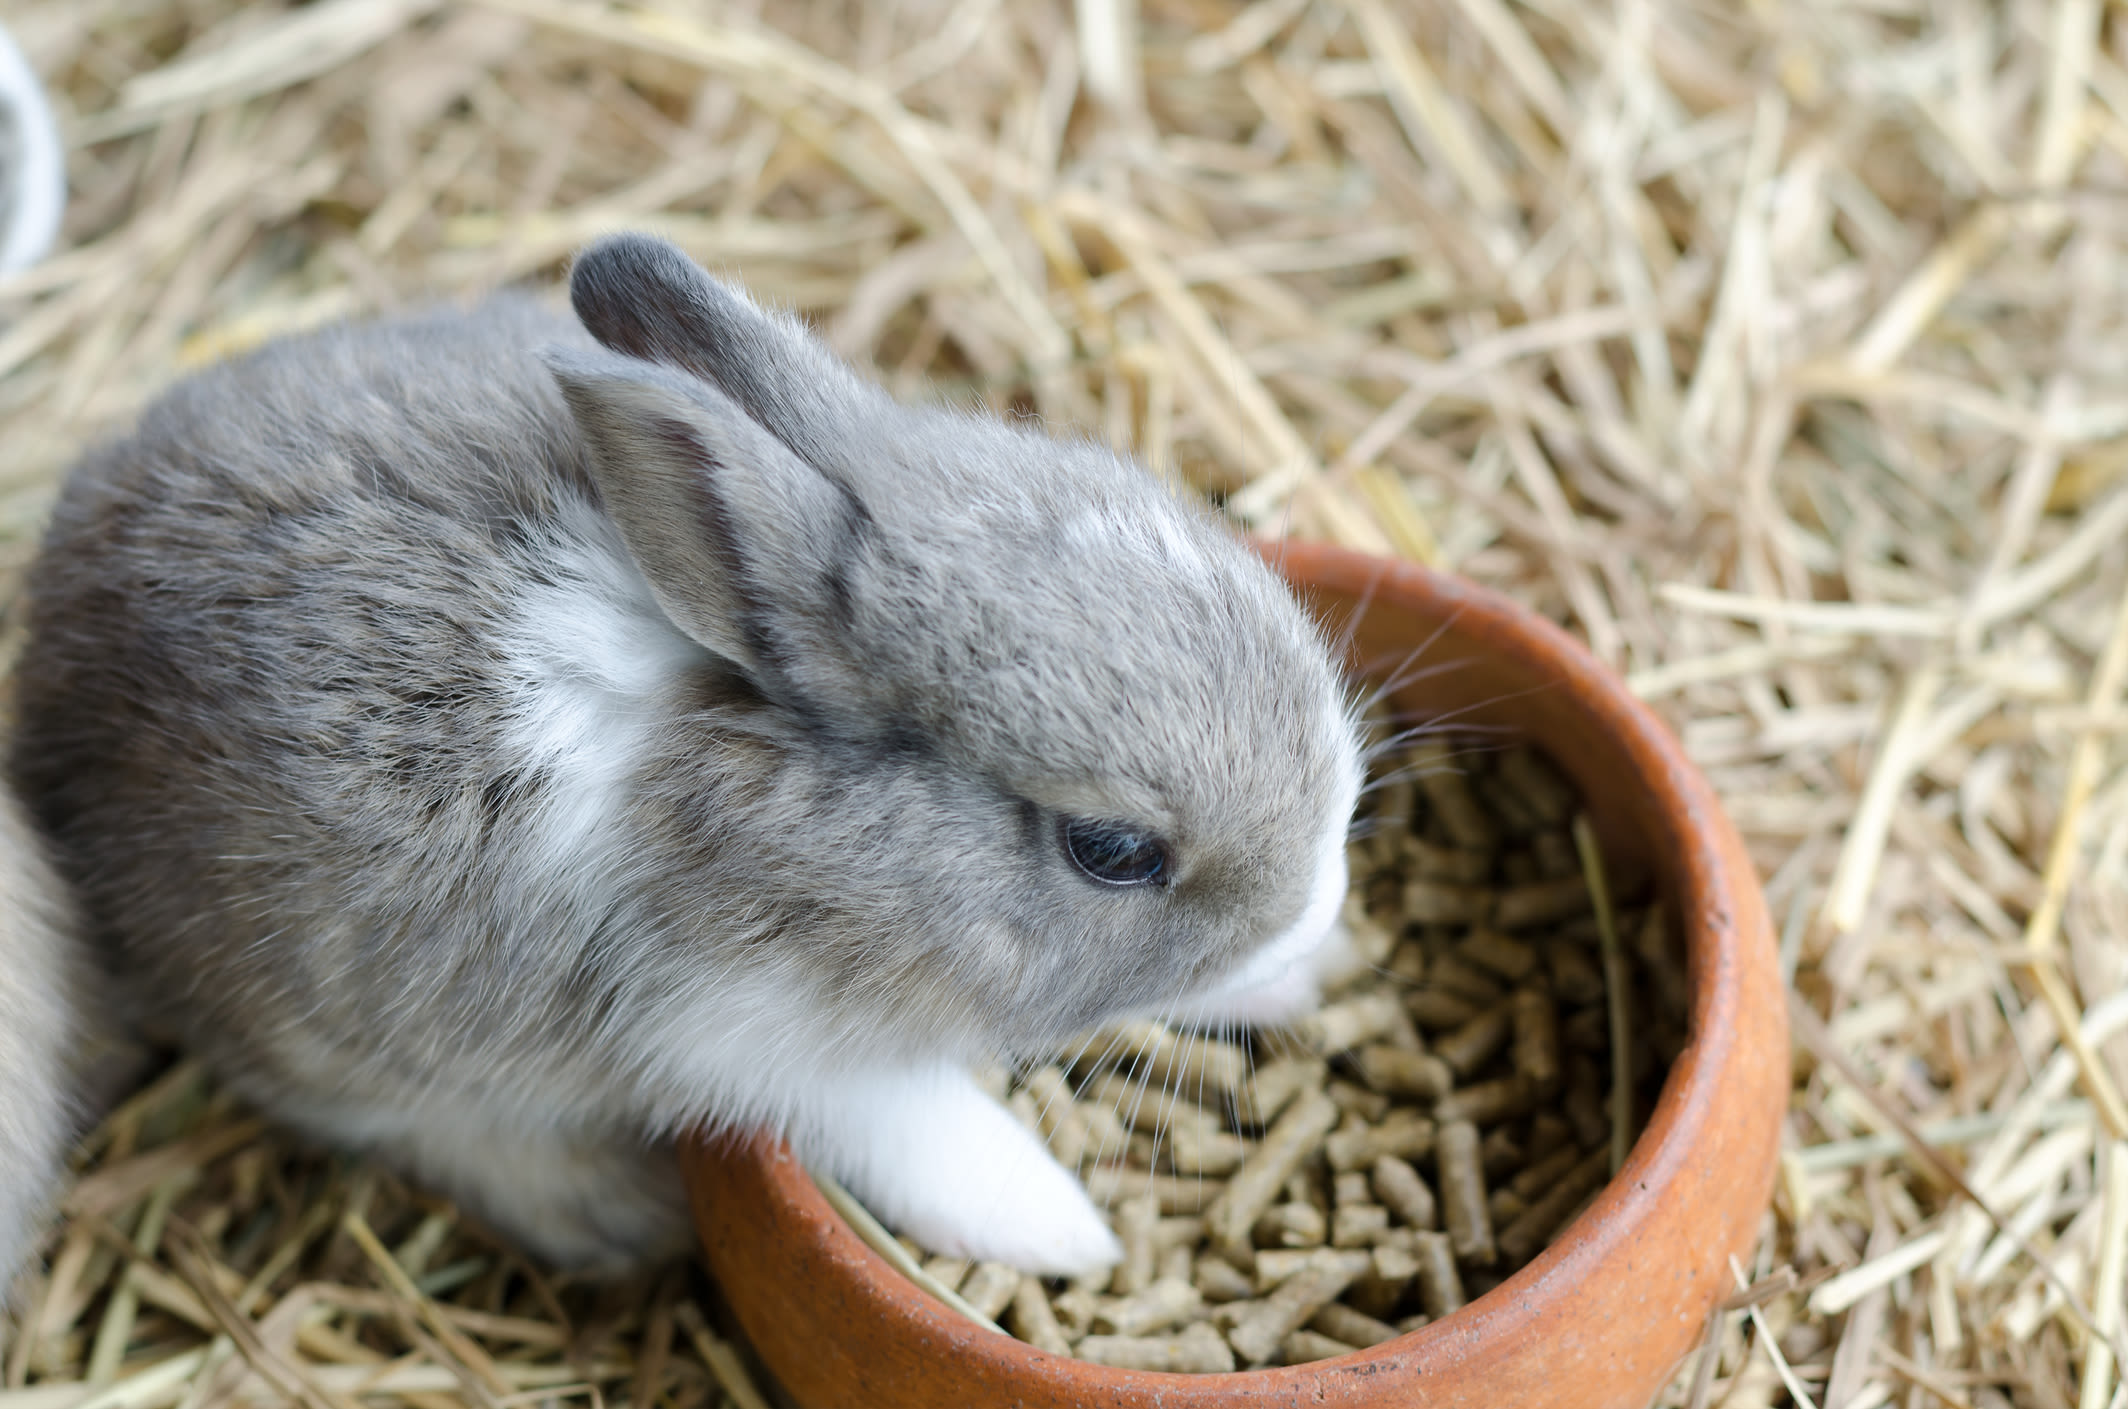 Rabbit eating at Black Forest Veterinary Clinic in Colorado Springs, Colorado